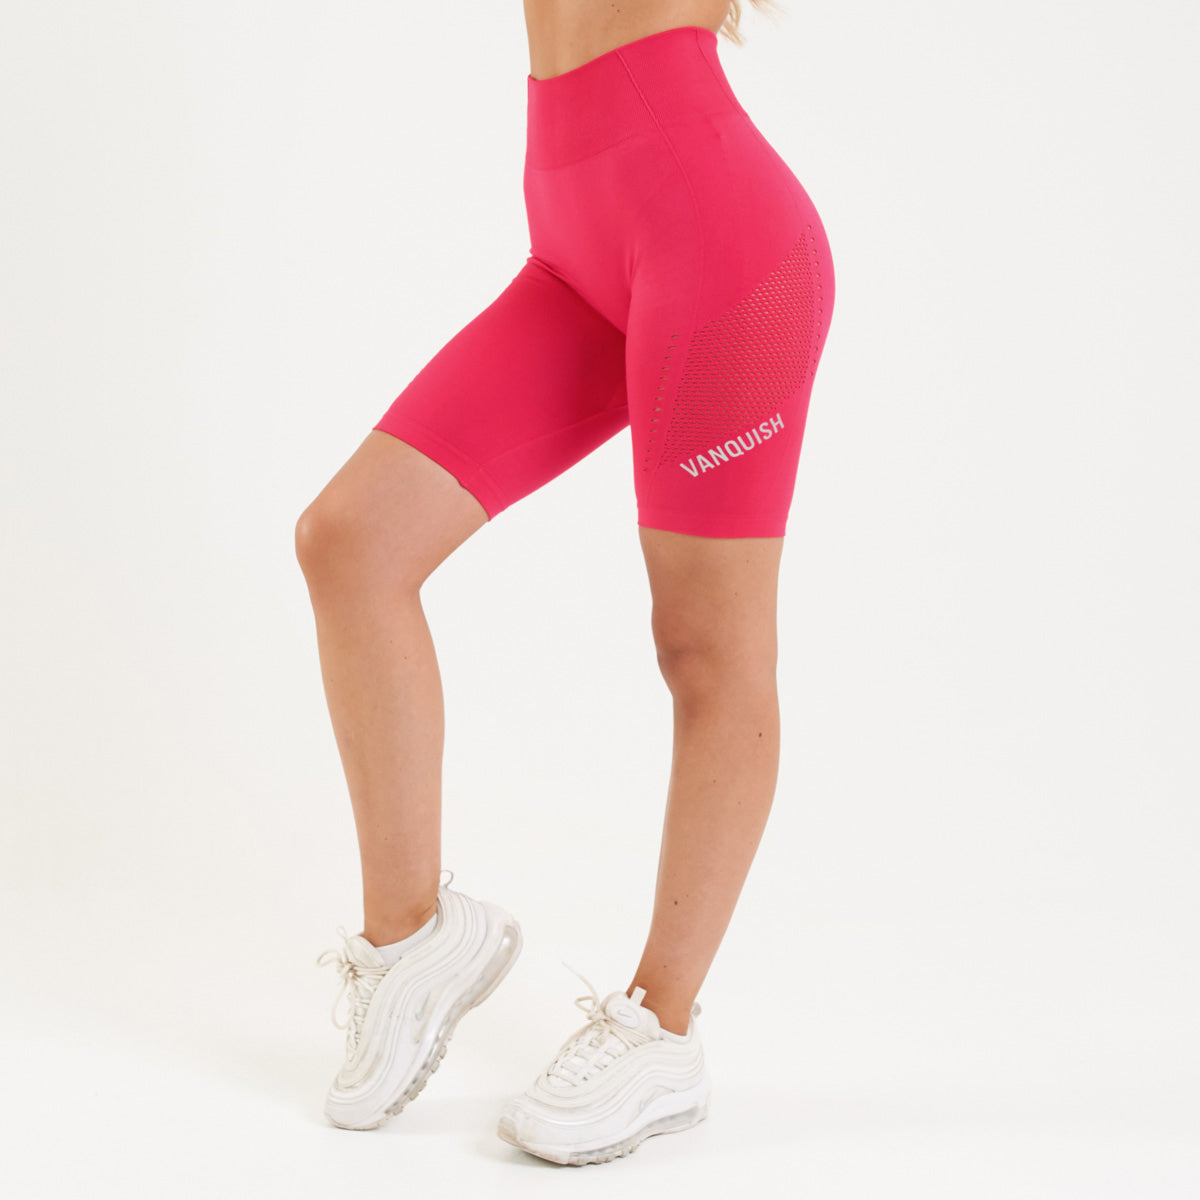 Vanquish Zeal Women's Pink Seamless Cycling Shorts